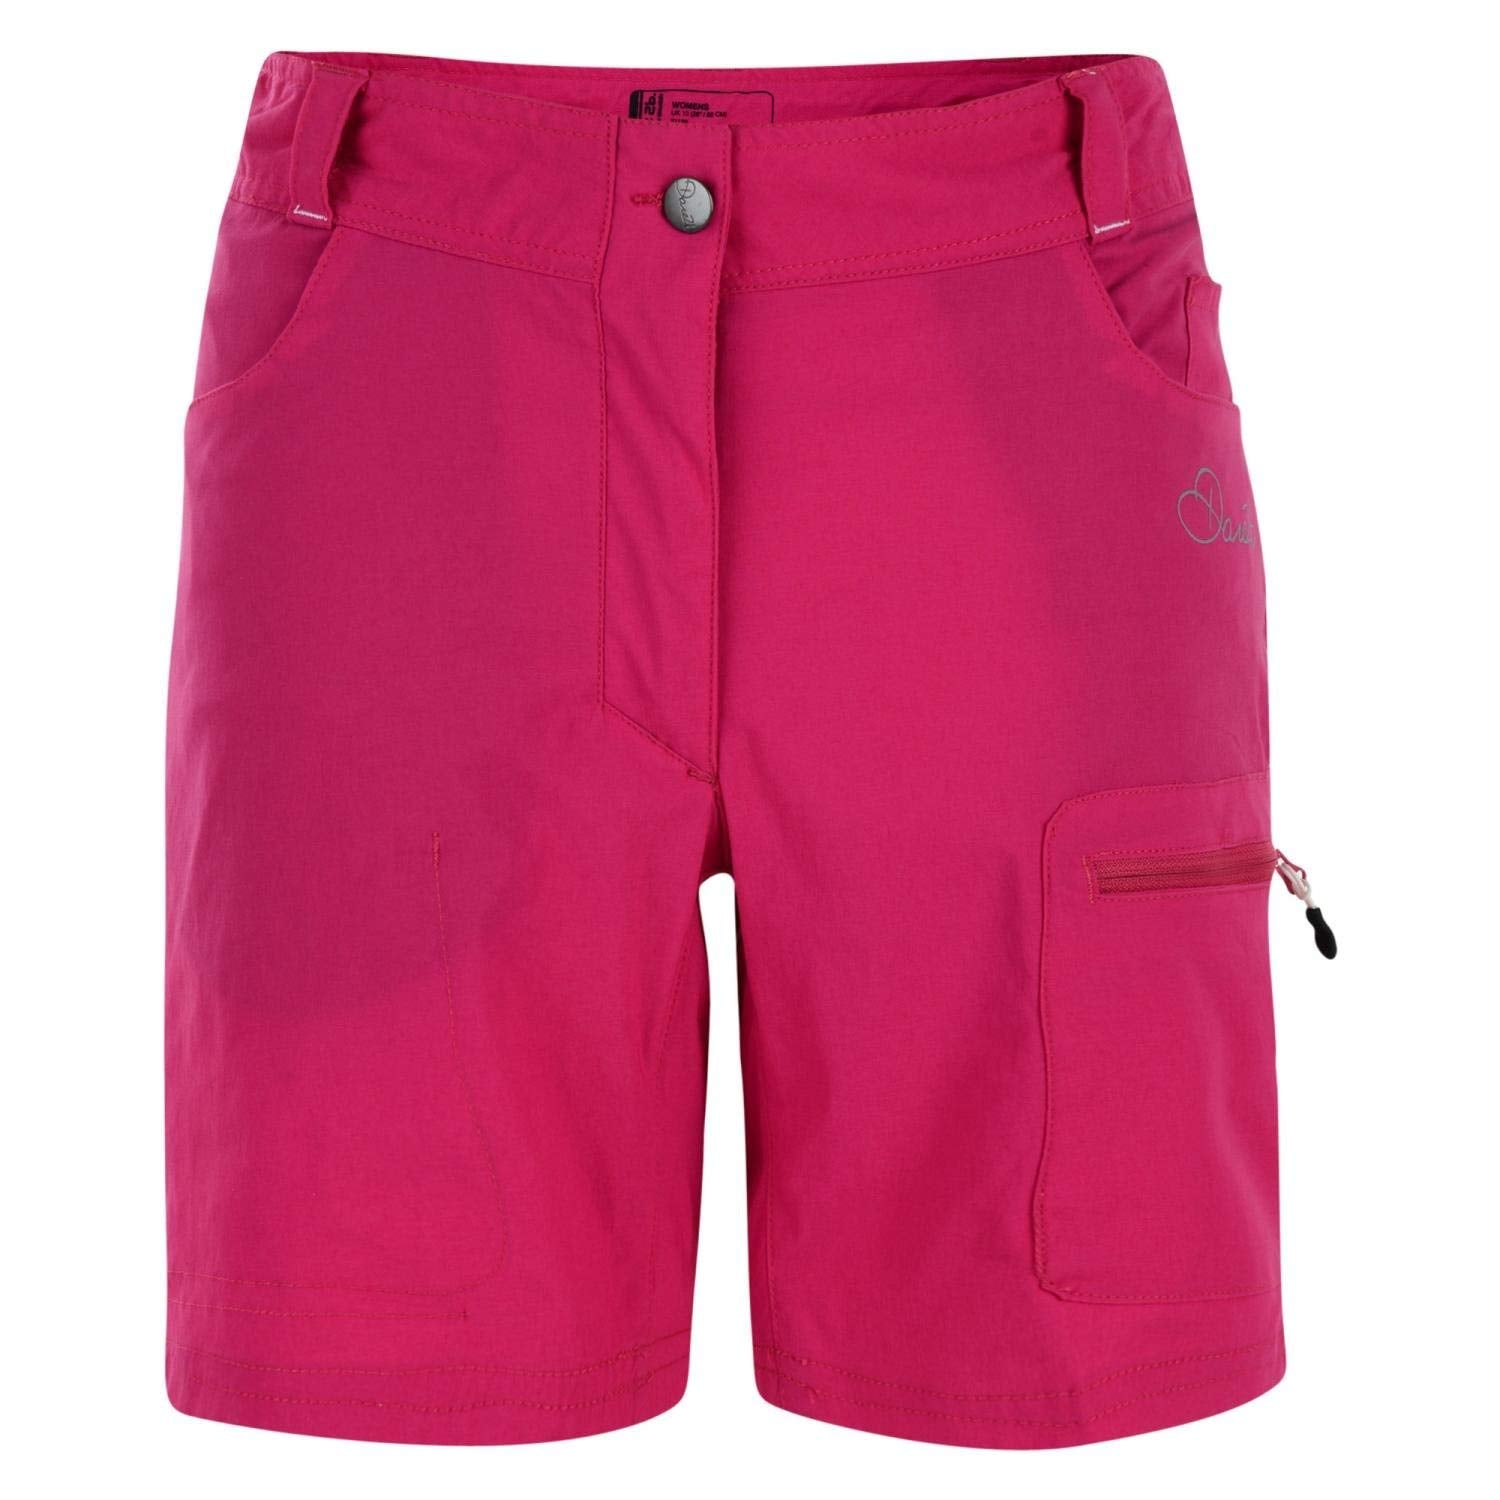 Dare 2b Women's Melodic Short